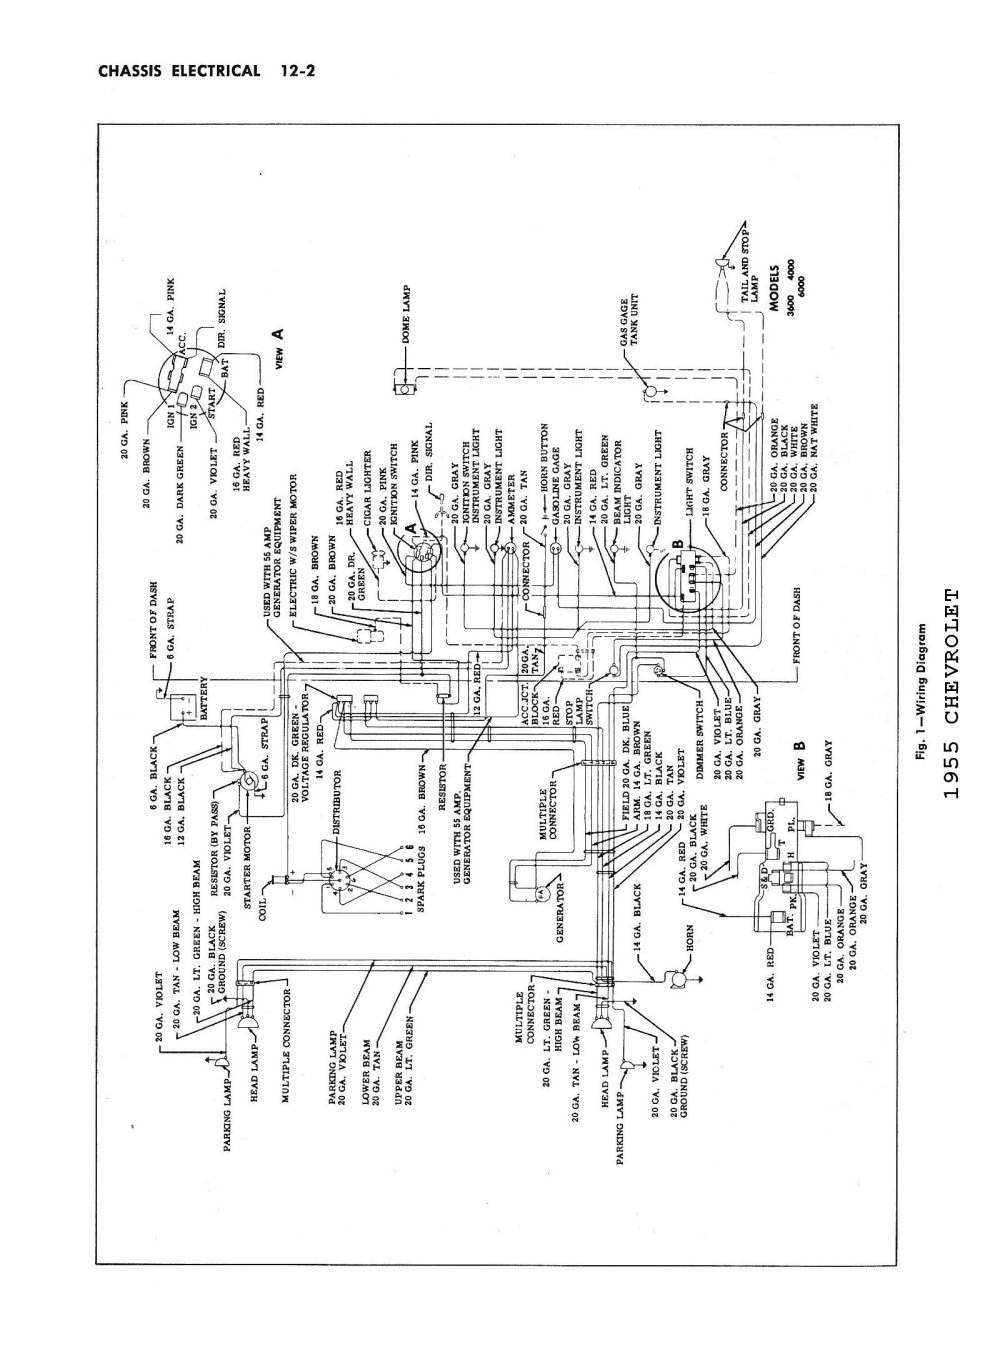 medium resolution of 1955 1955 car wiring diagrams 1955 passenger car wiring 1955 truck wiring